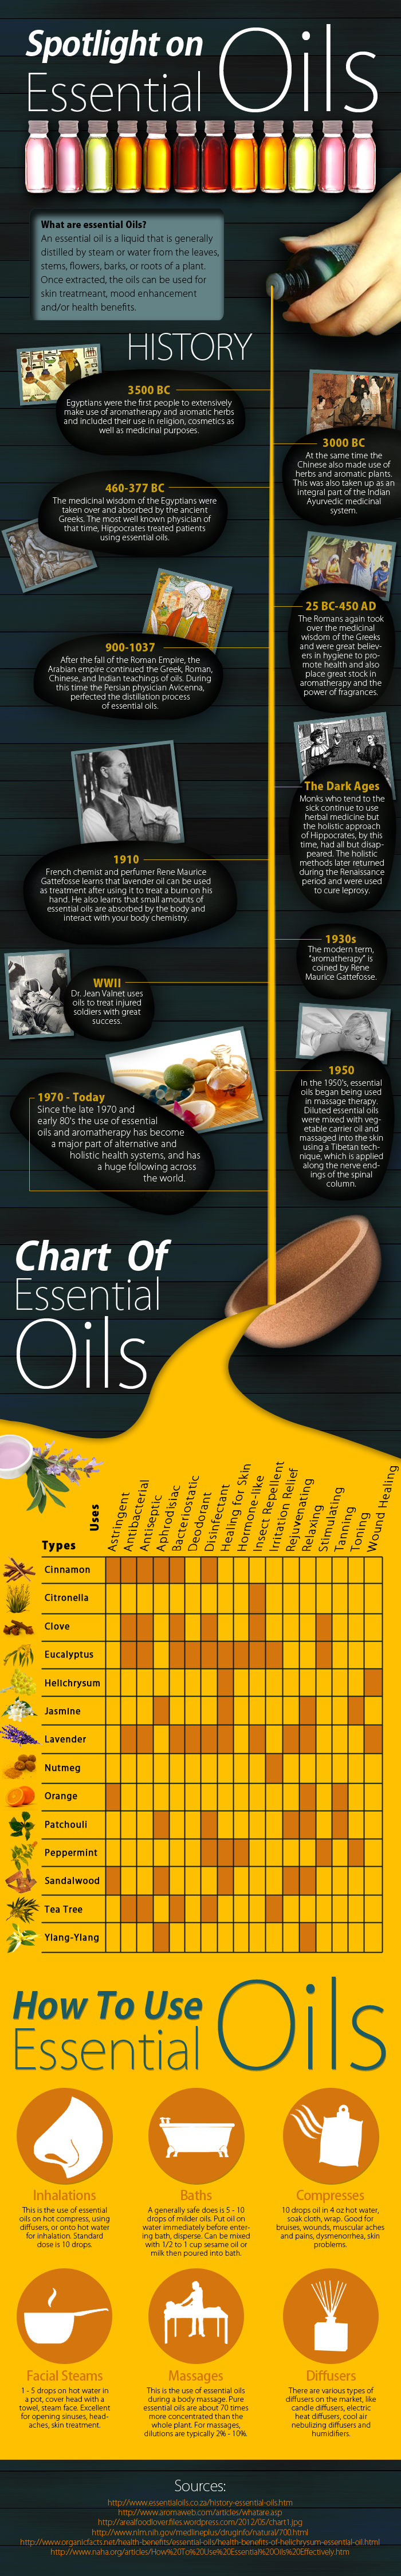 History and Use of Essential Oils